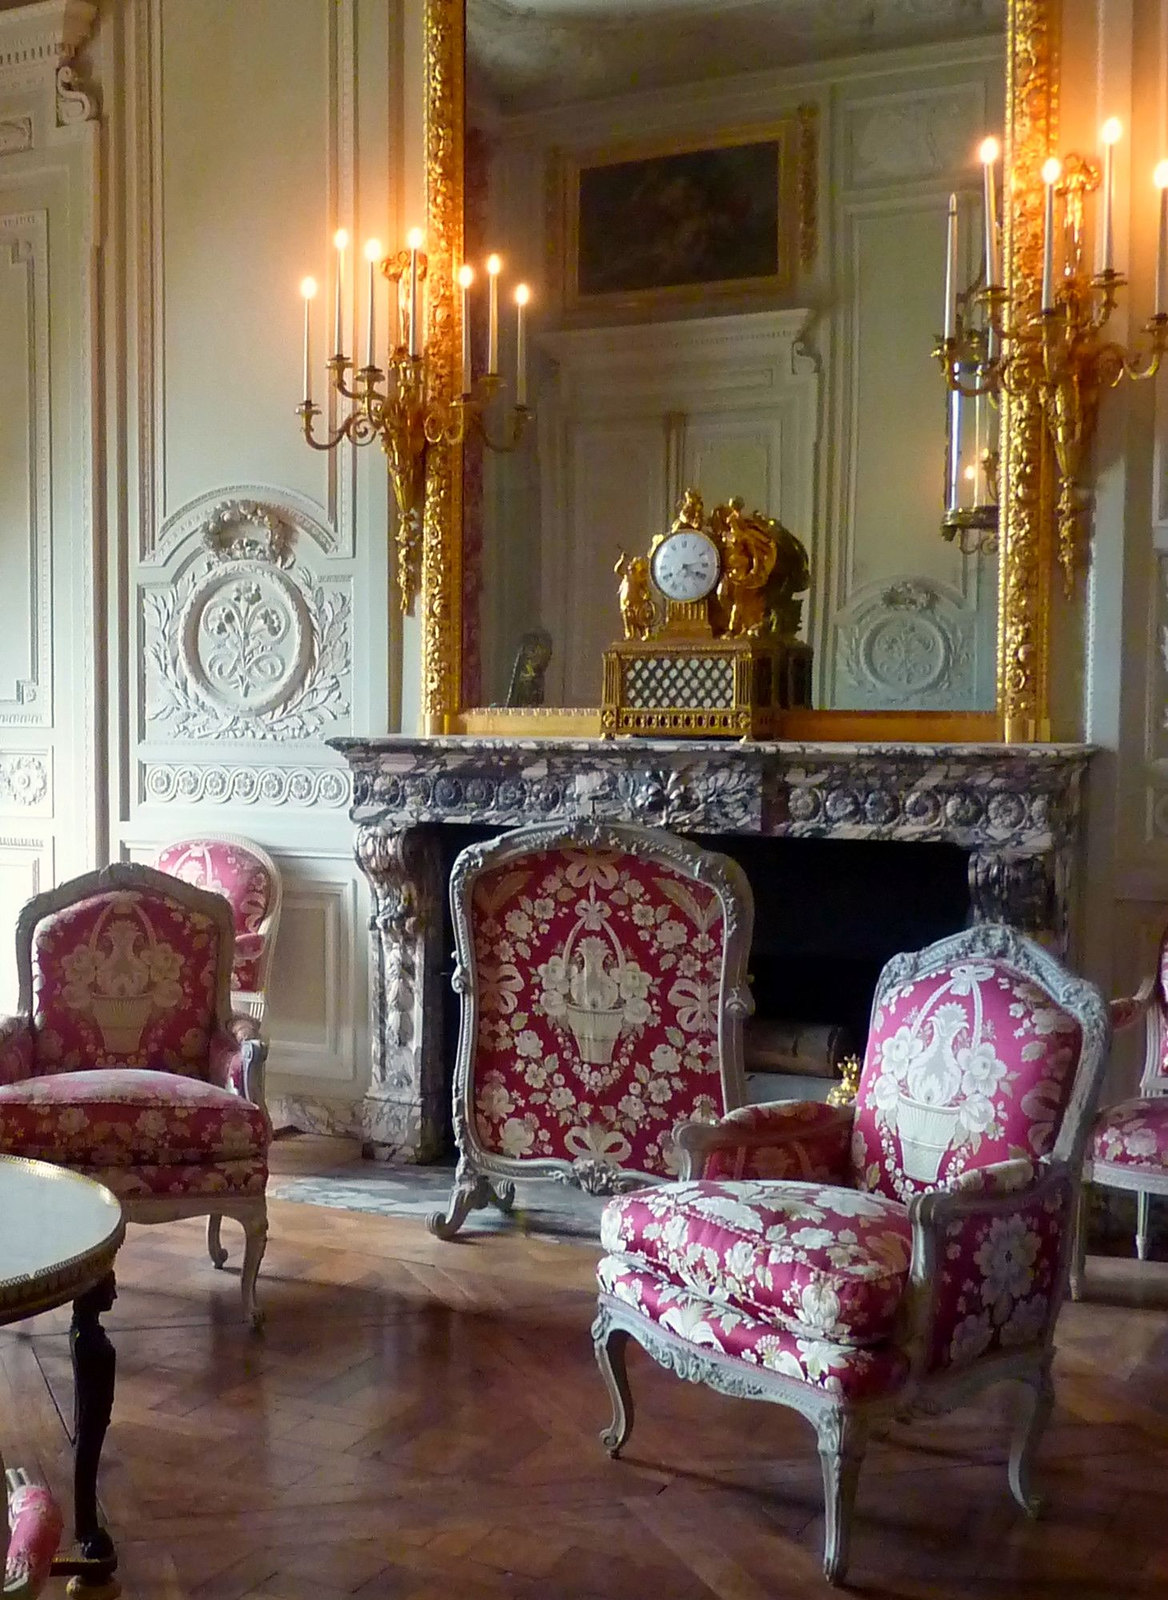 Pet Salon Petit Trianon, Versailles. Credit Heleashard